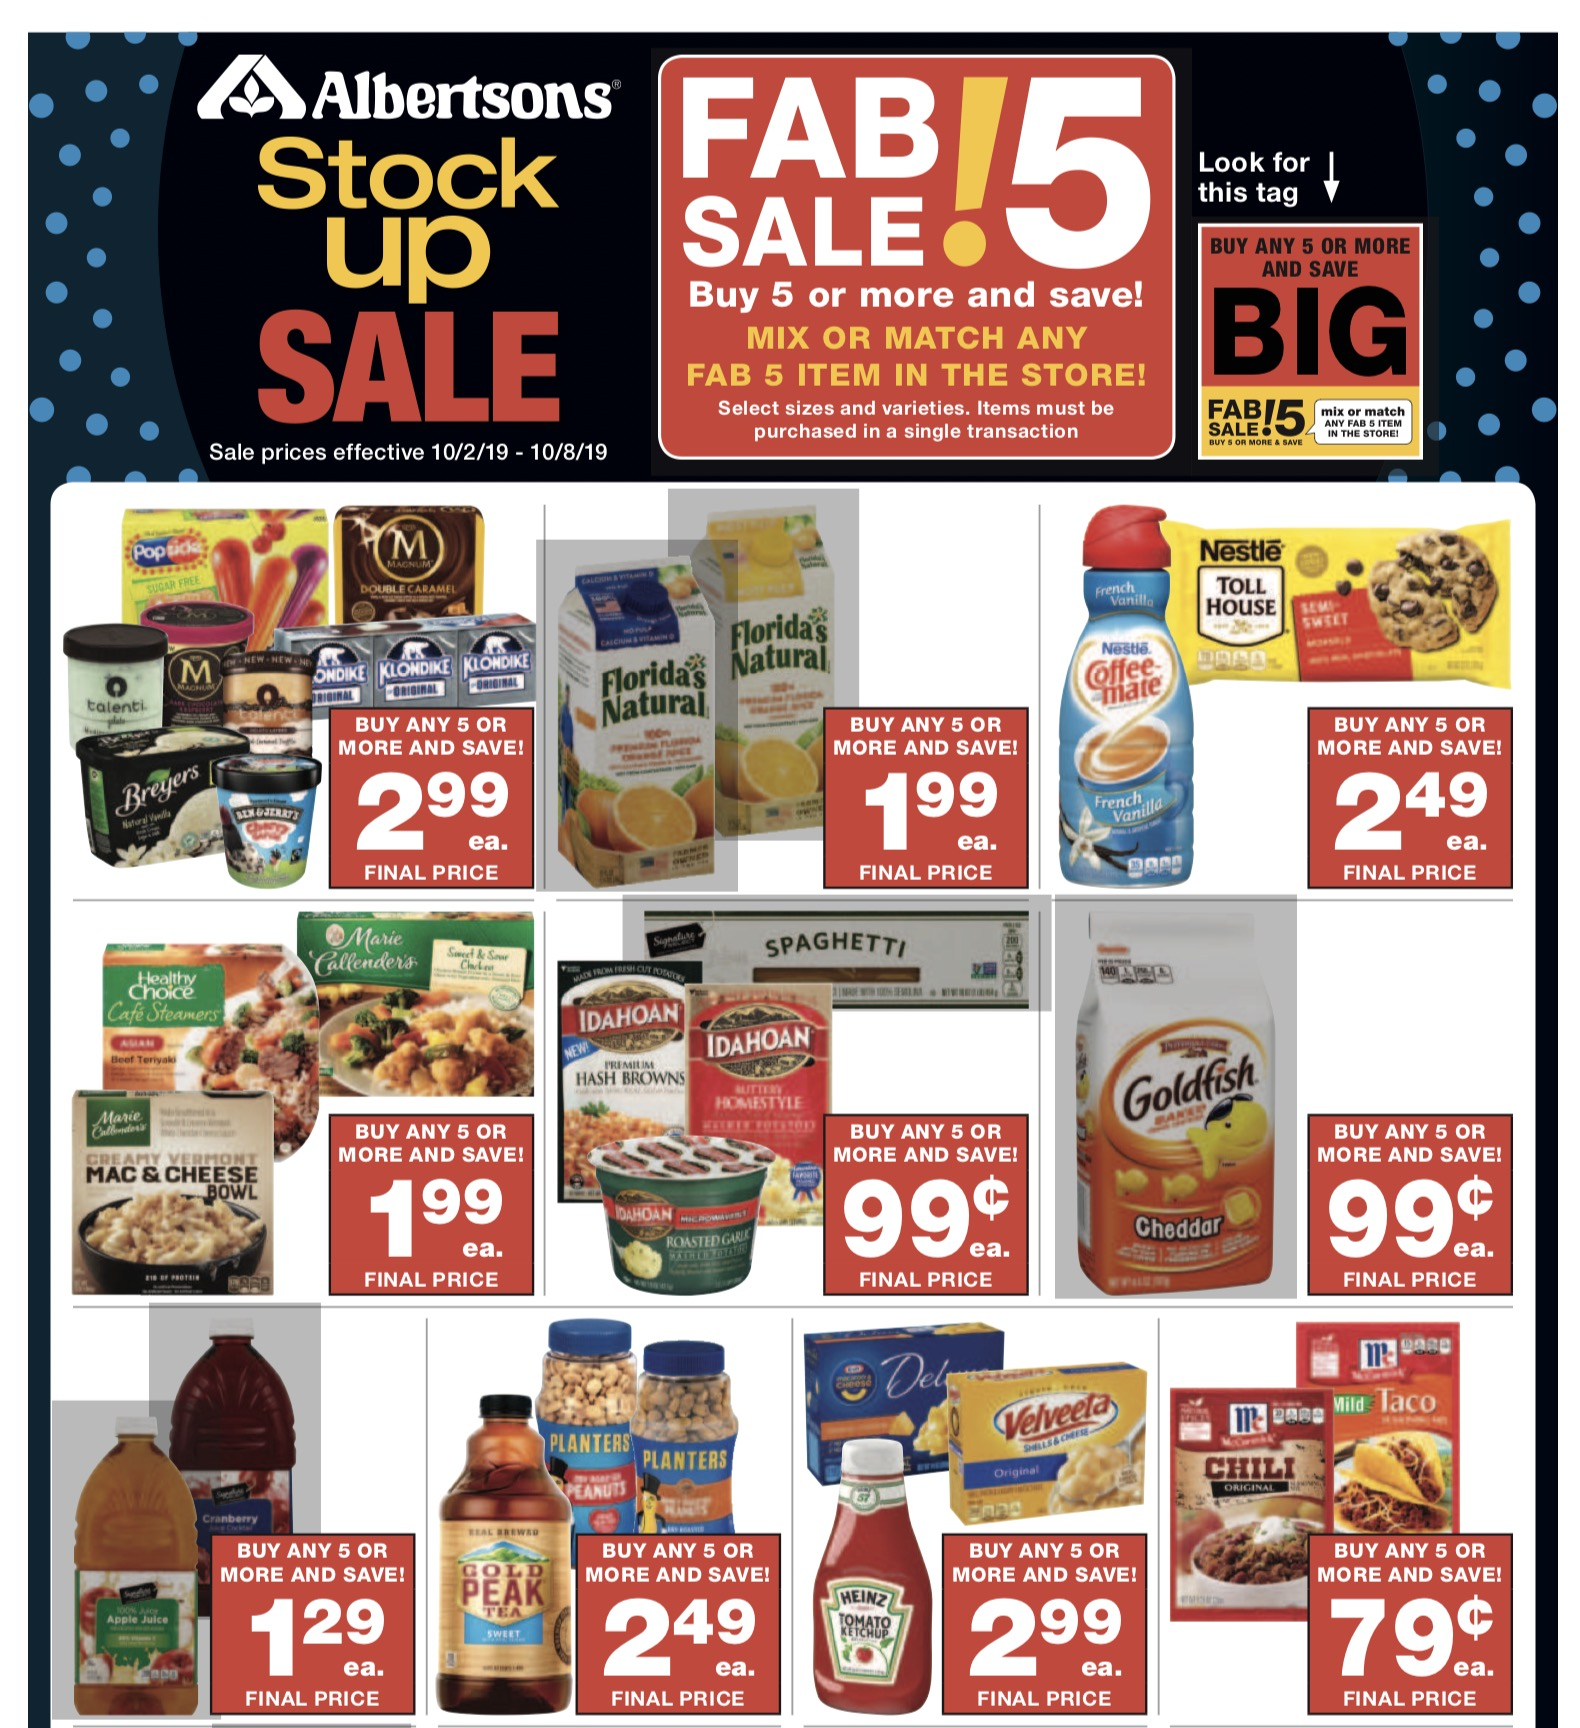 Albertsons Weekly Ad (10/2/19 - 10/8/19) Early Preview